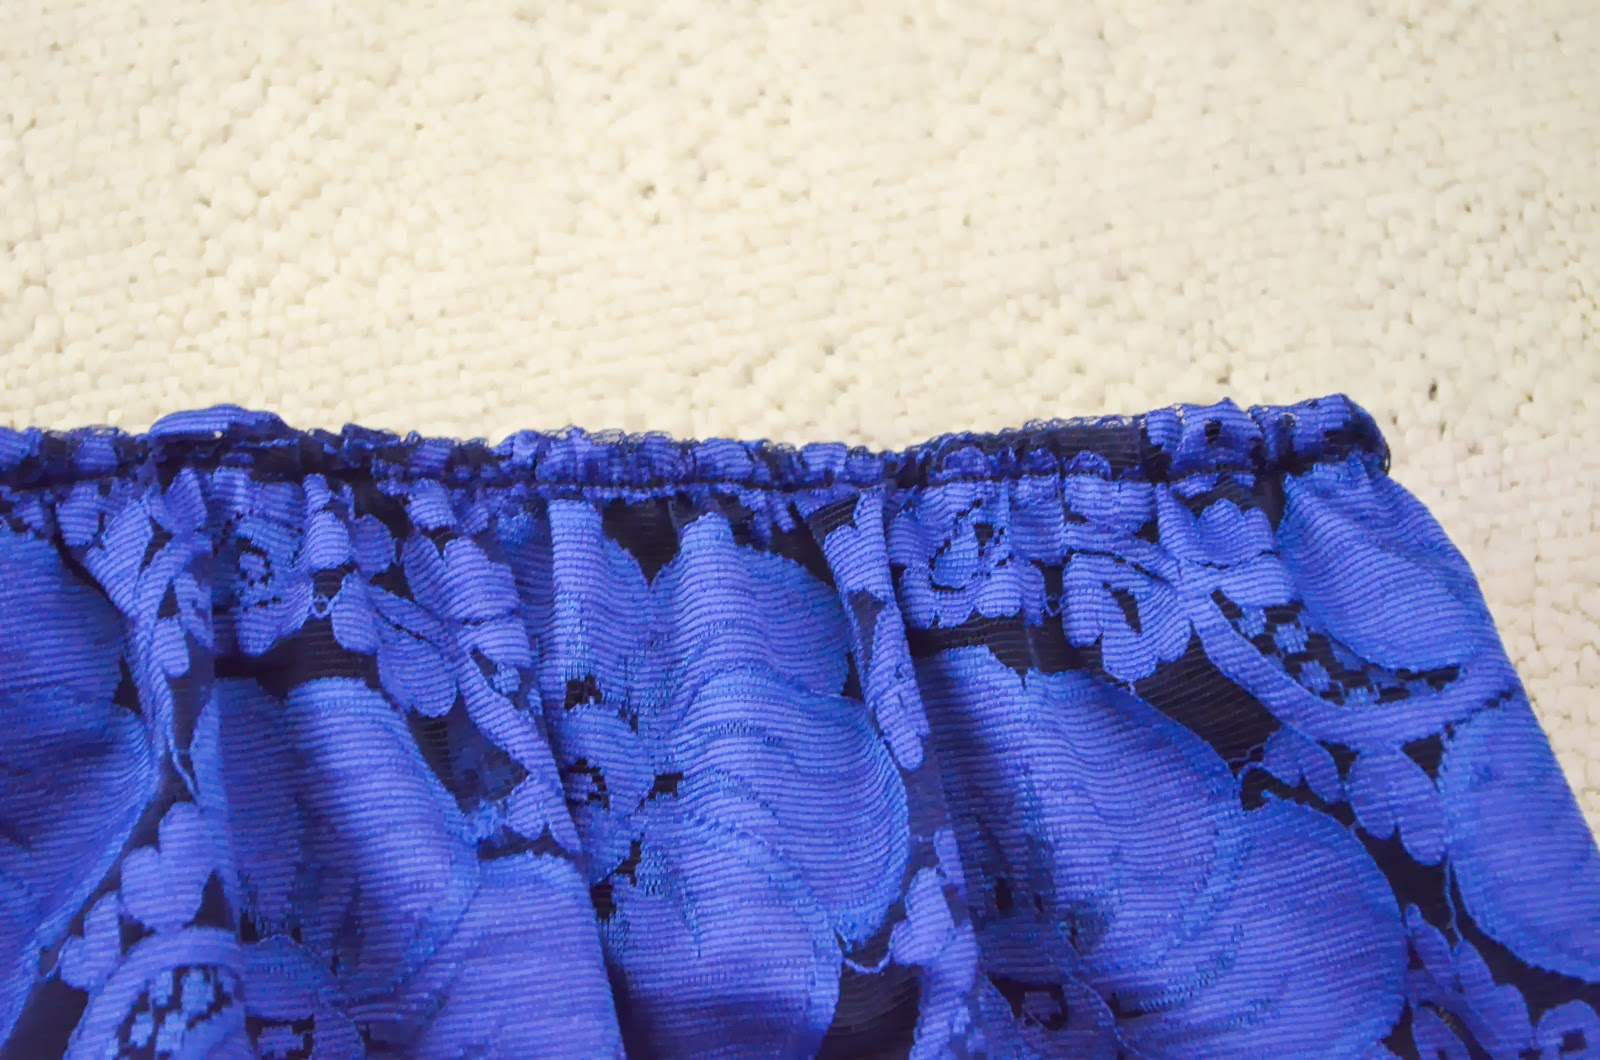 sew blue lace diy maxi skirt blue do it yourself